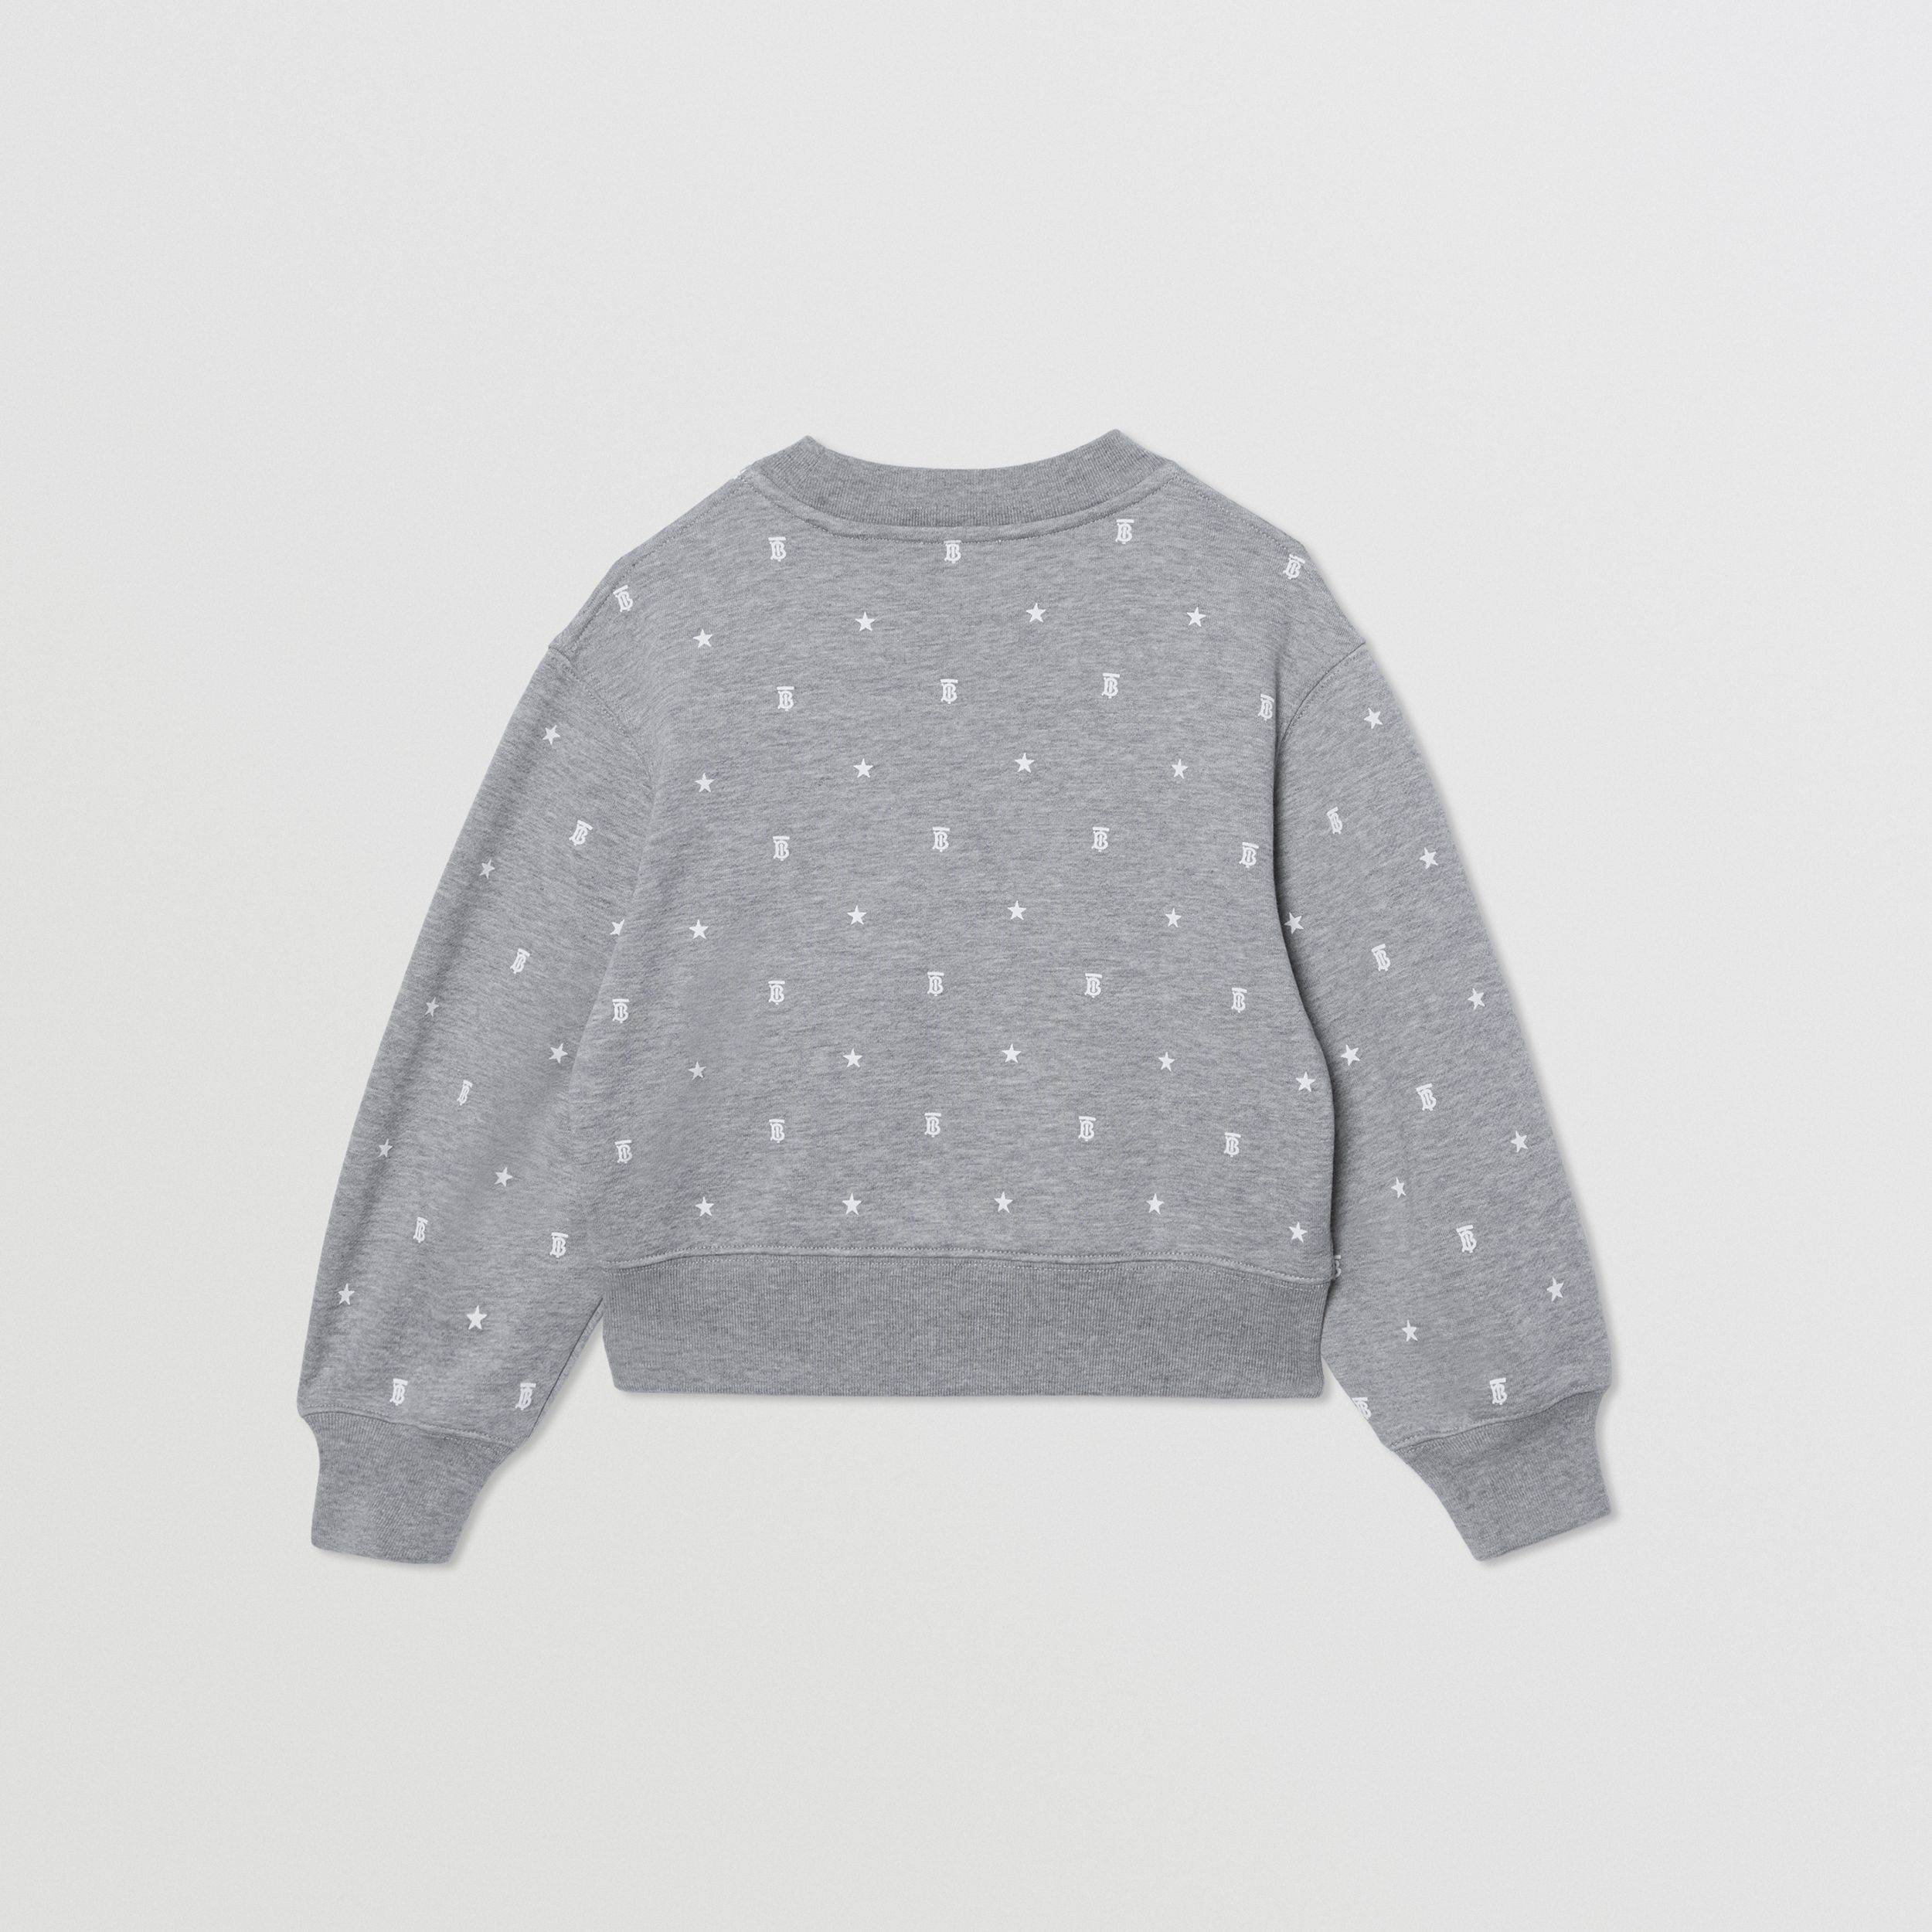 Star and Monogram Motif Cotton Sweatshirt in Grey | Burberry - 4